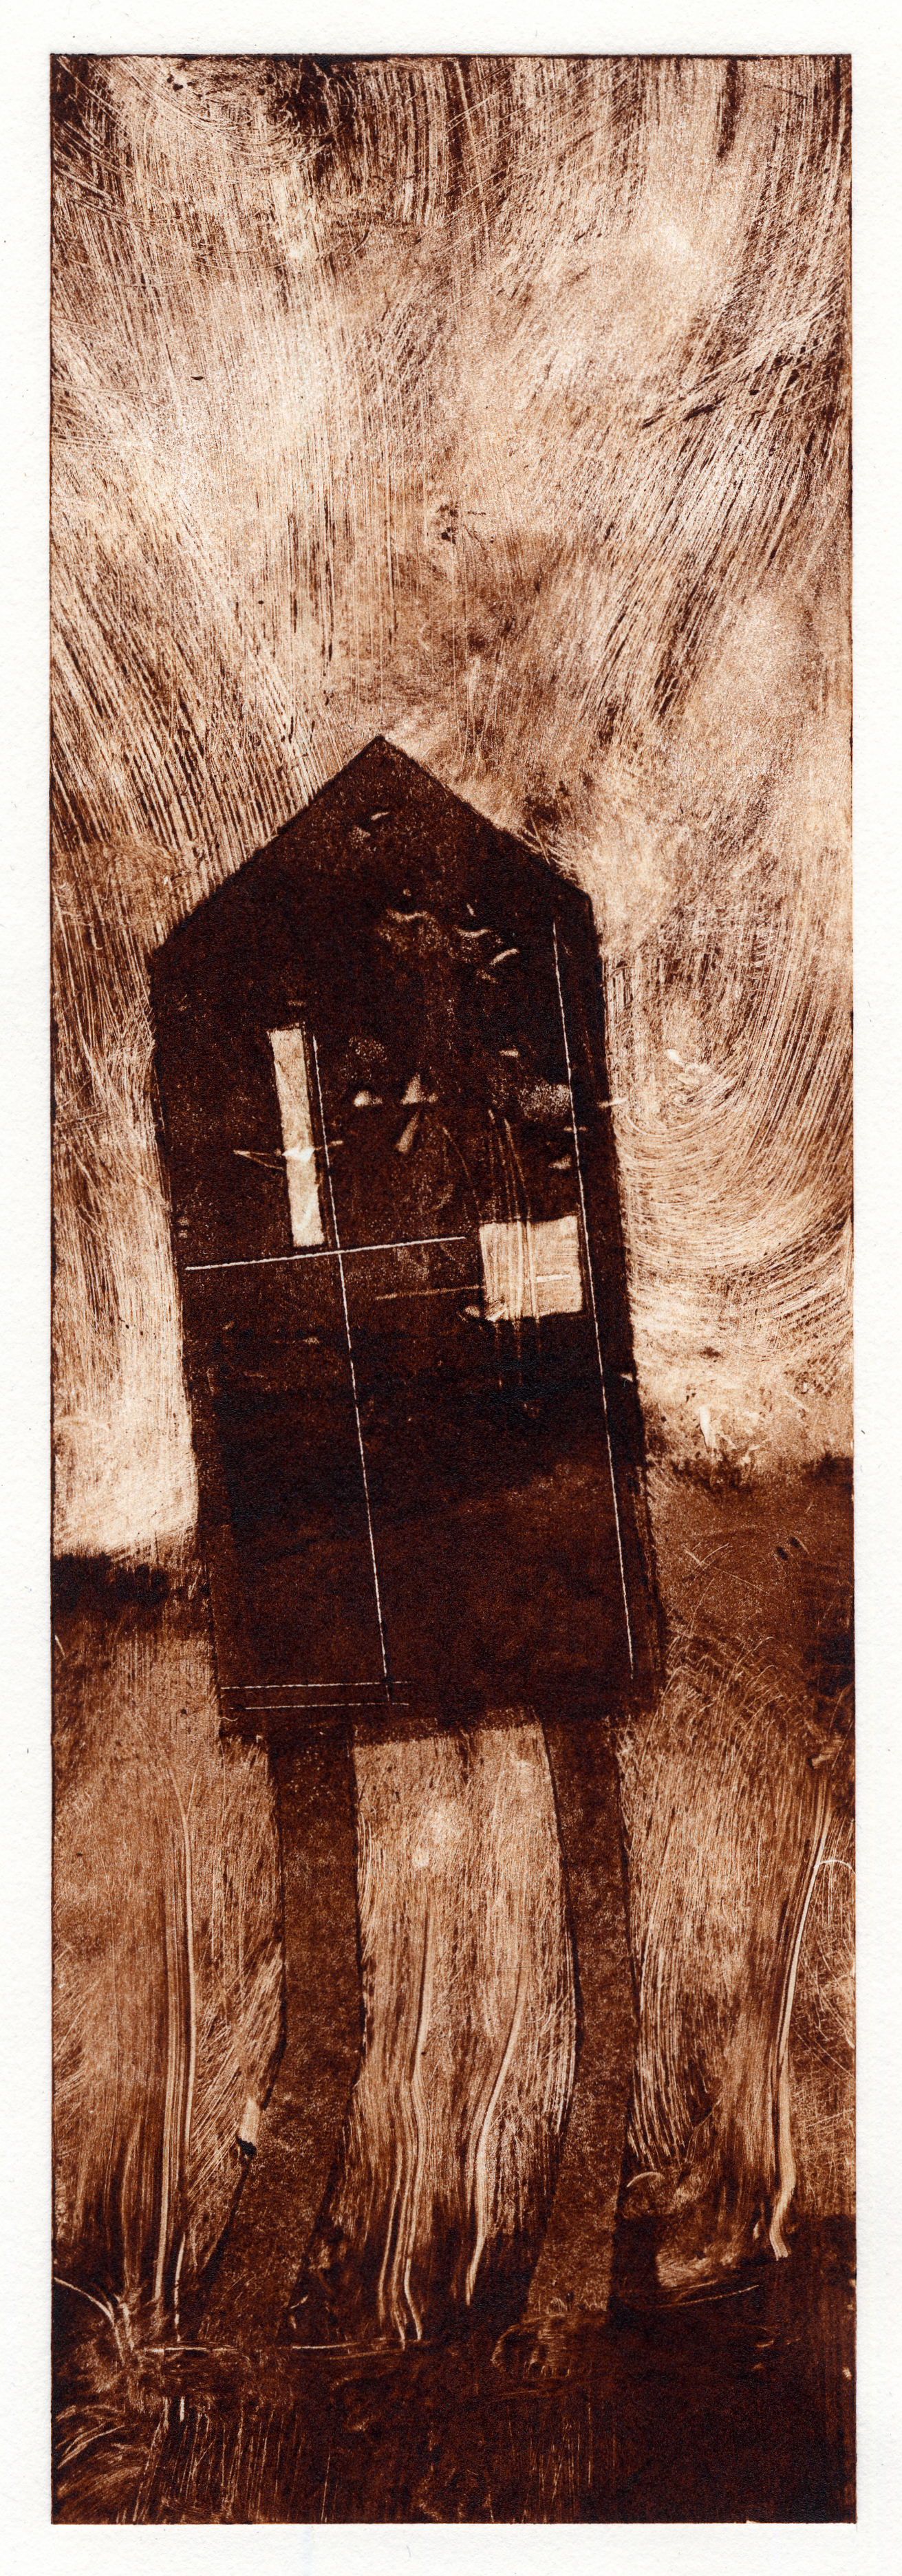 A monotype print by Clive Knights from his dwelling study in umber